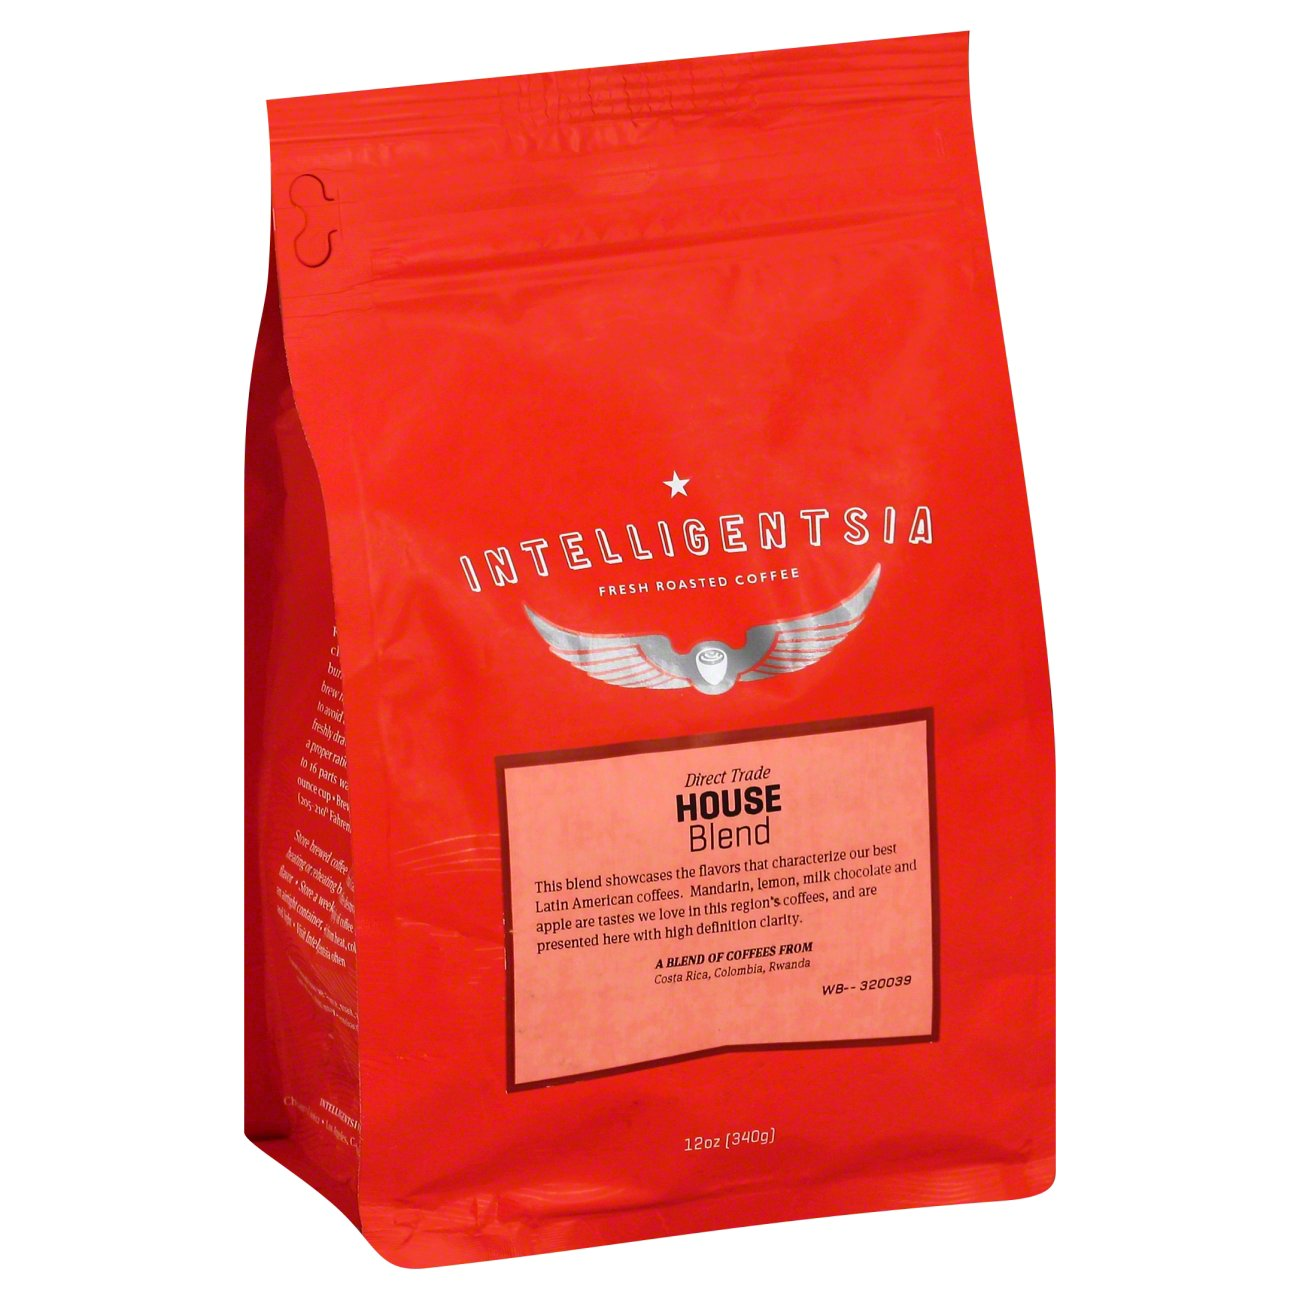 Intelligentsia House Blend Ground Coffee - 12oz bag